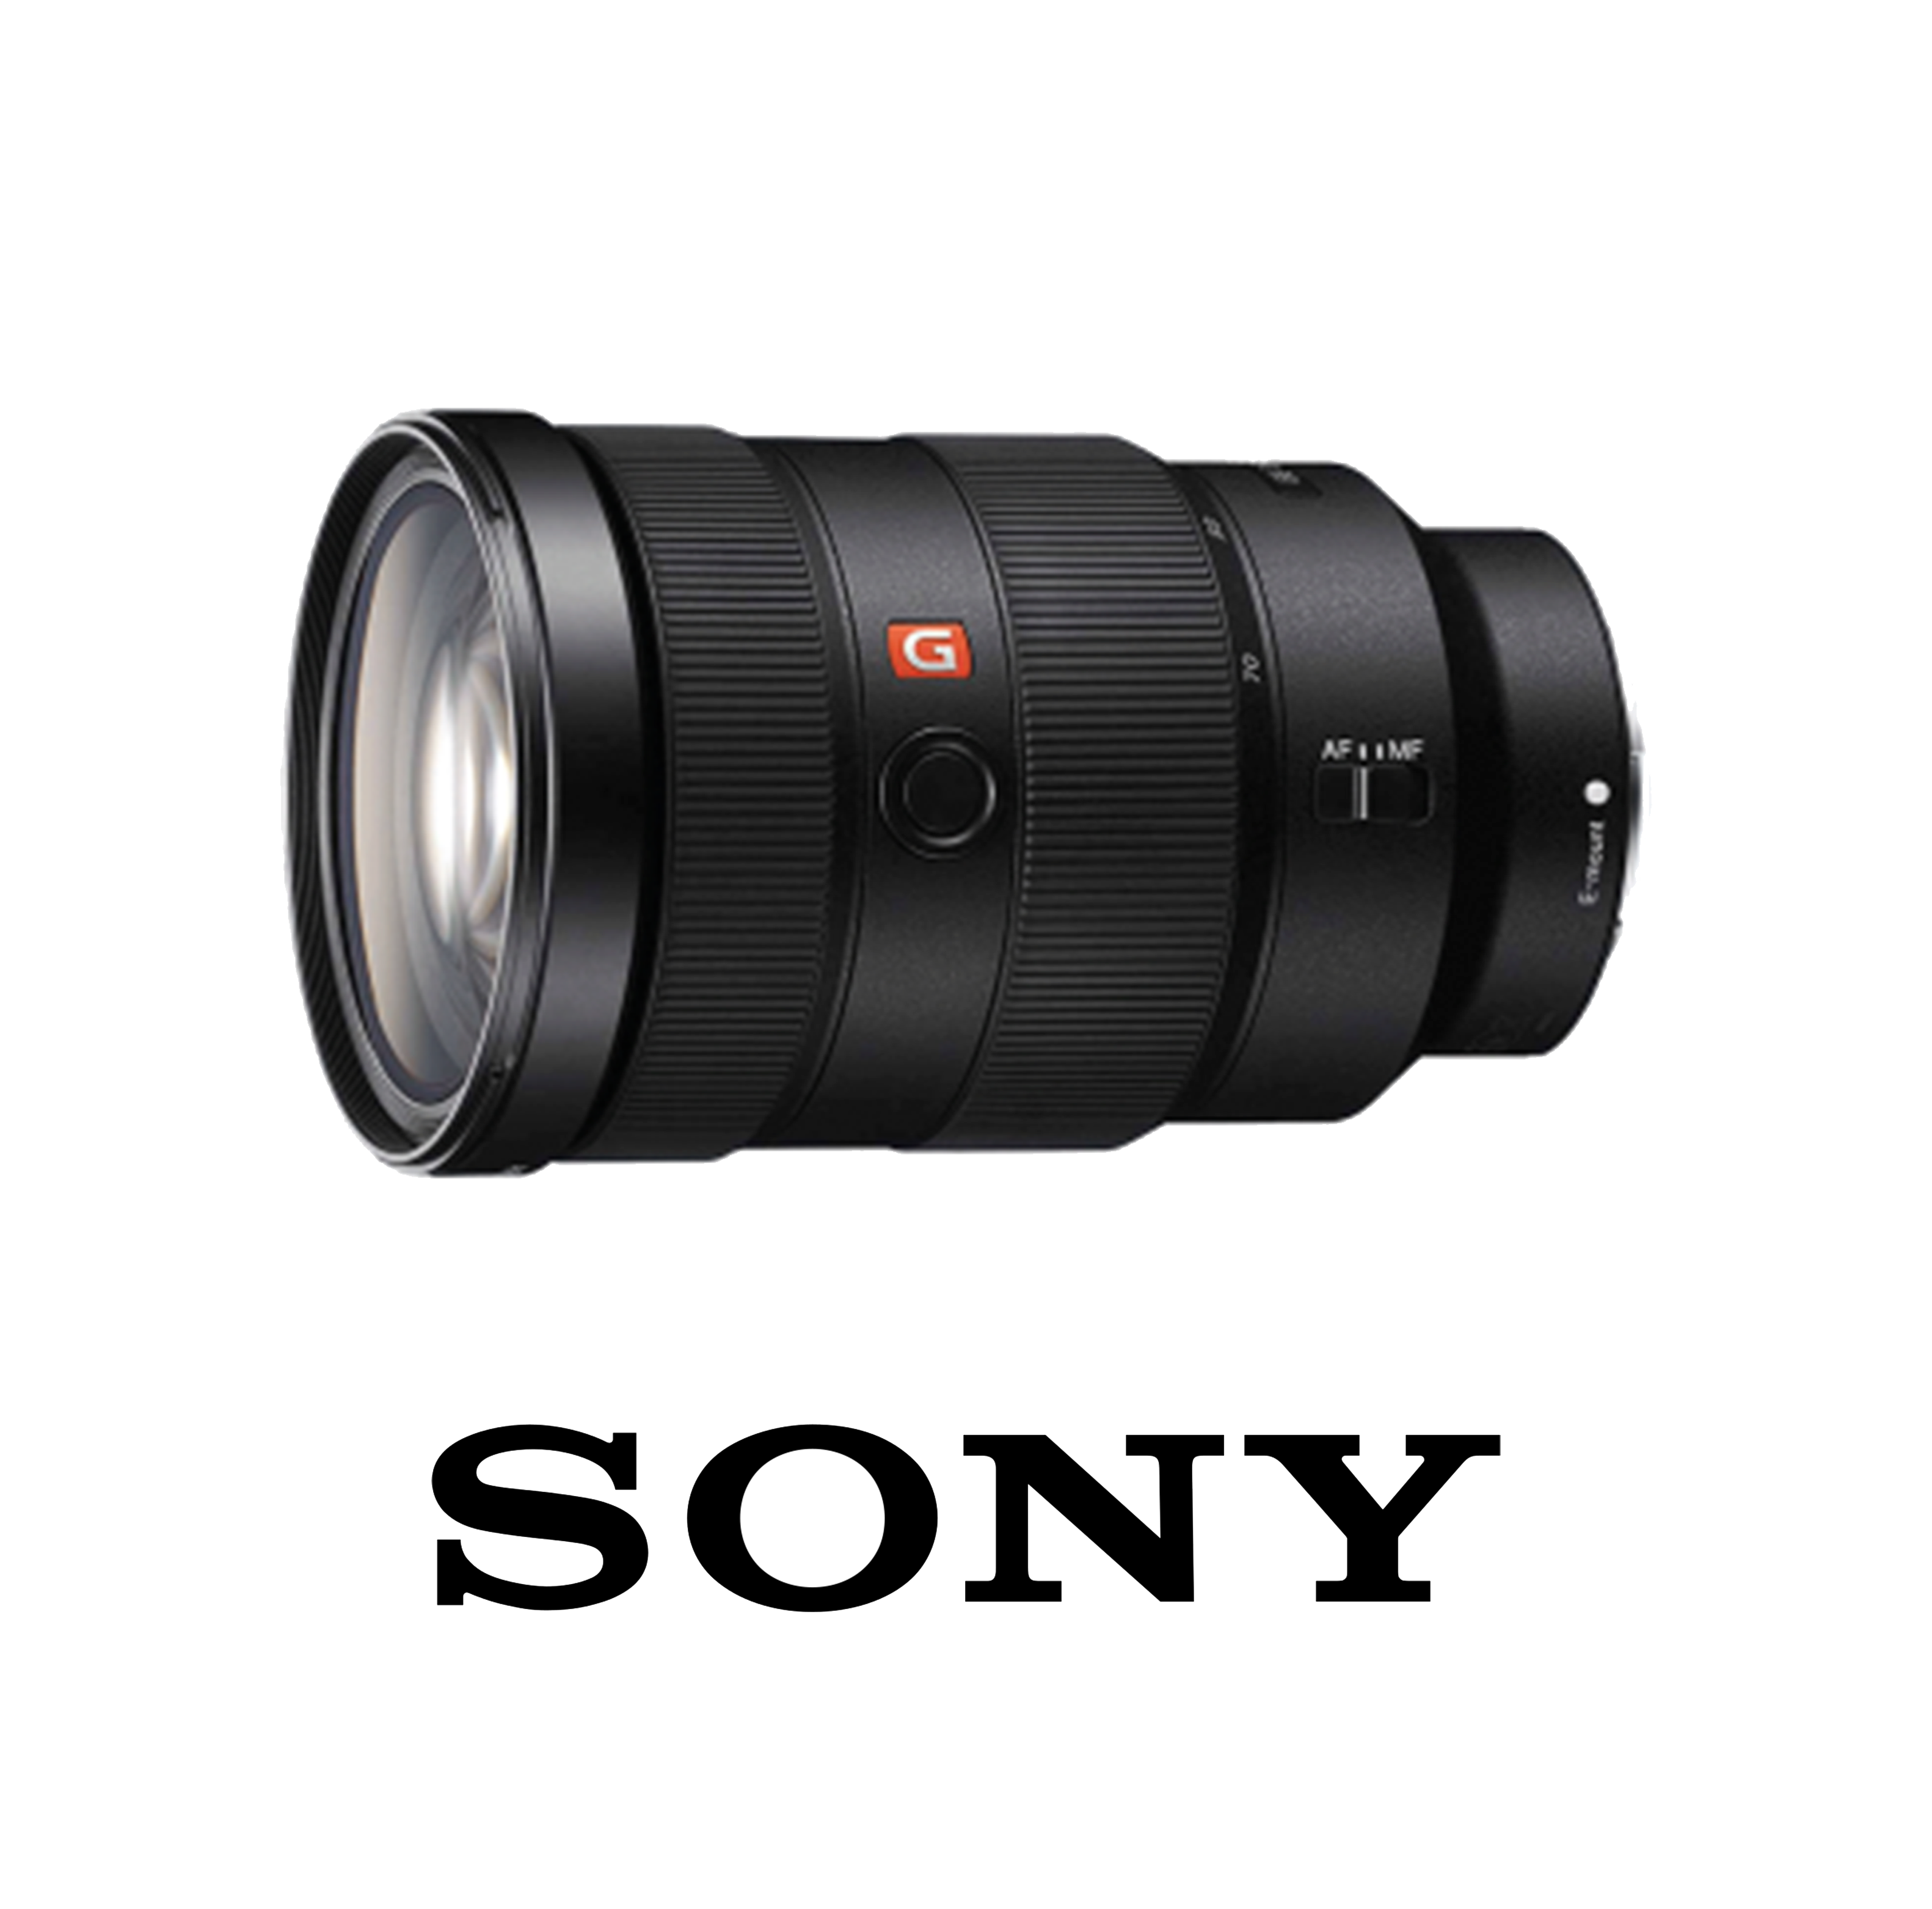 Sony 24-70 mm f/2.8 GM Lens